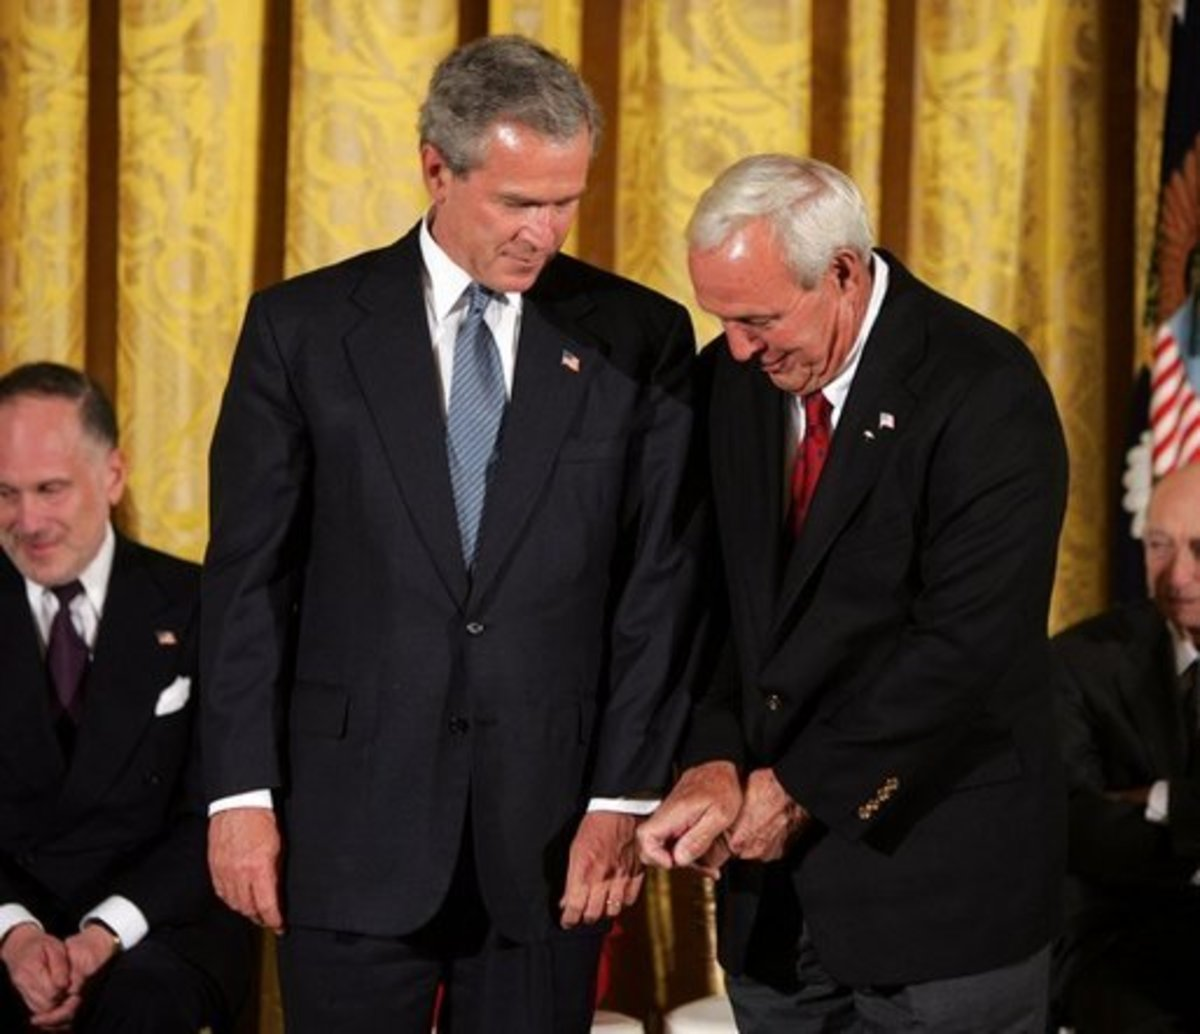 Arnold Palmer Receiving the Presidential Medal of Freedom from then-President George W. Bush in June 2004